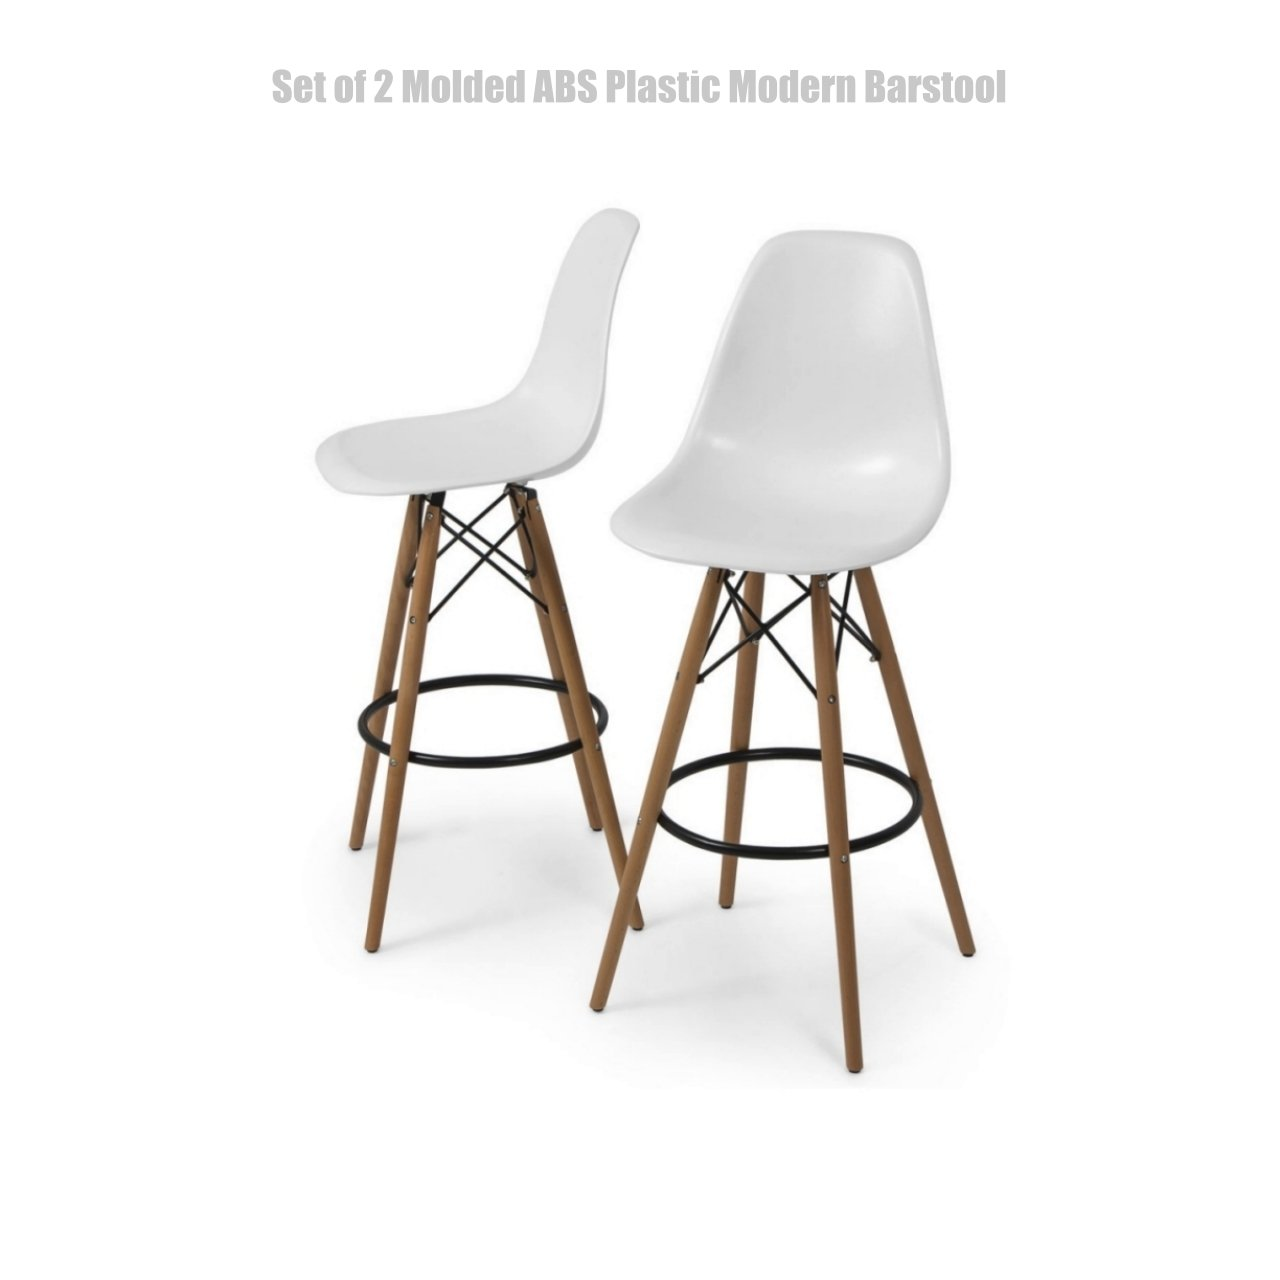 Modern Molded ABS Plastic Dining Chair Wooden Dowel Legs Posture Support Flexible Backrest Design Innovative Side Chair - Set of 2 White #1457